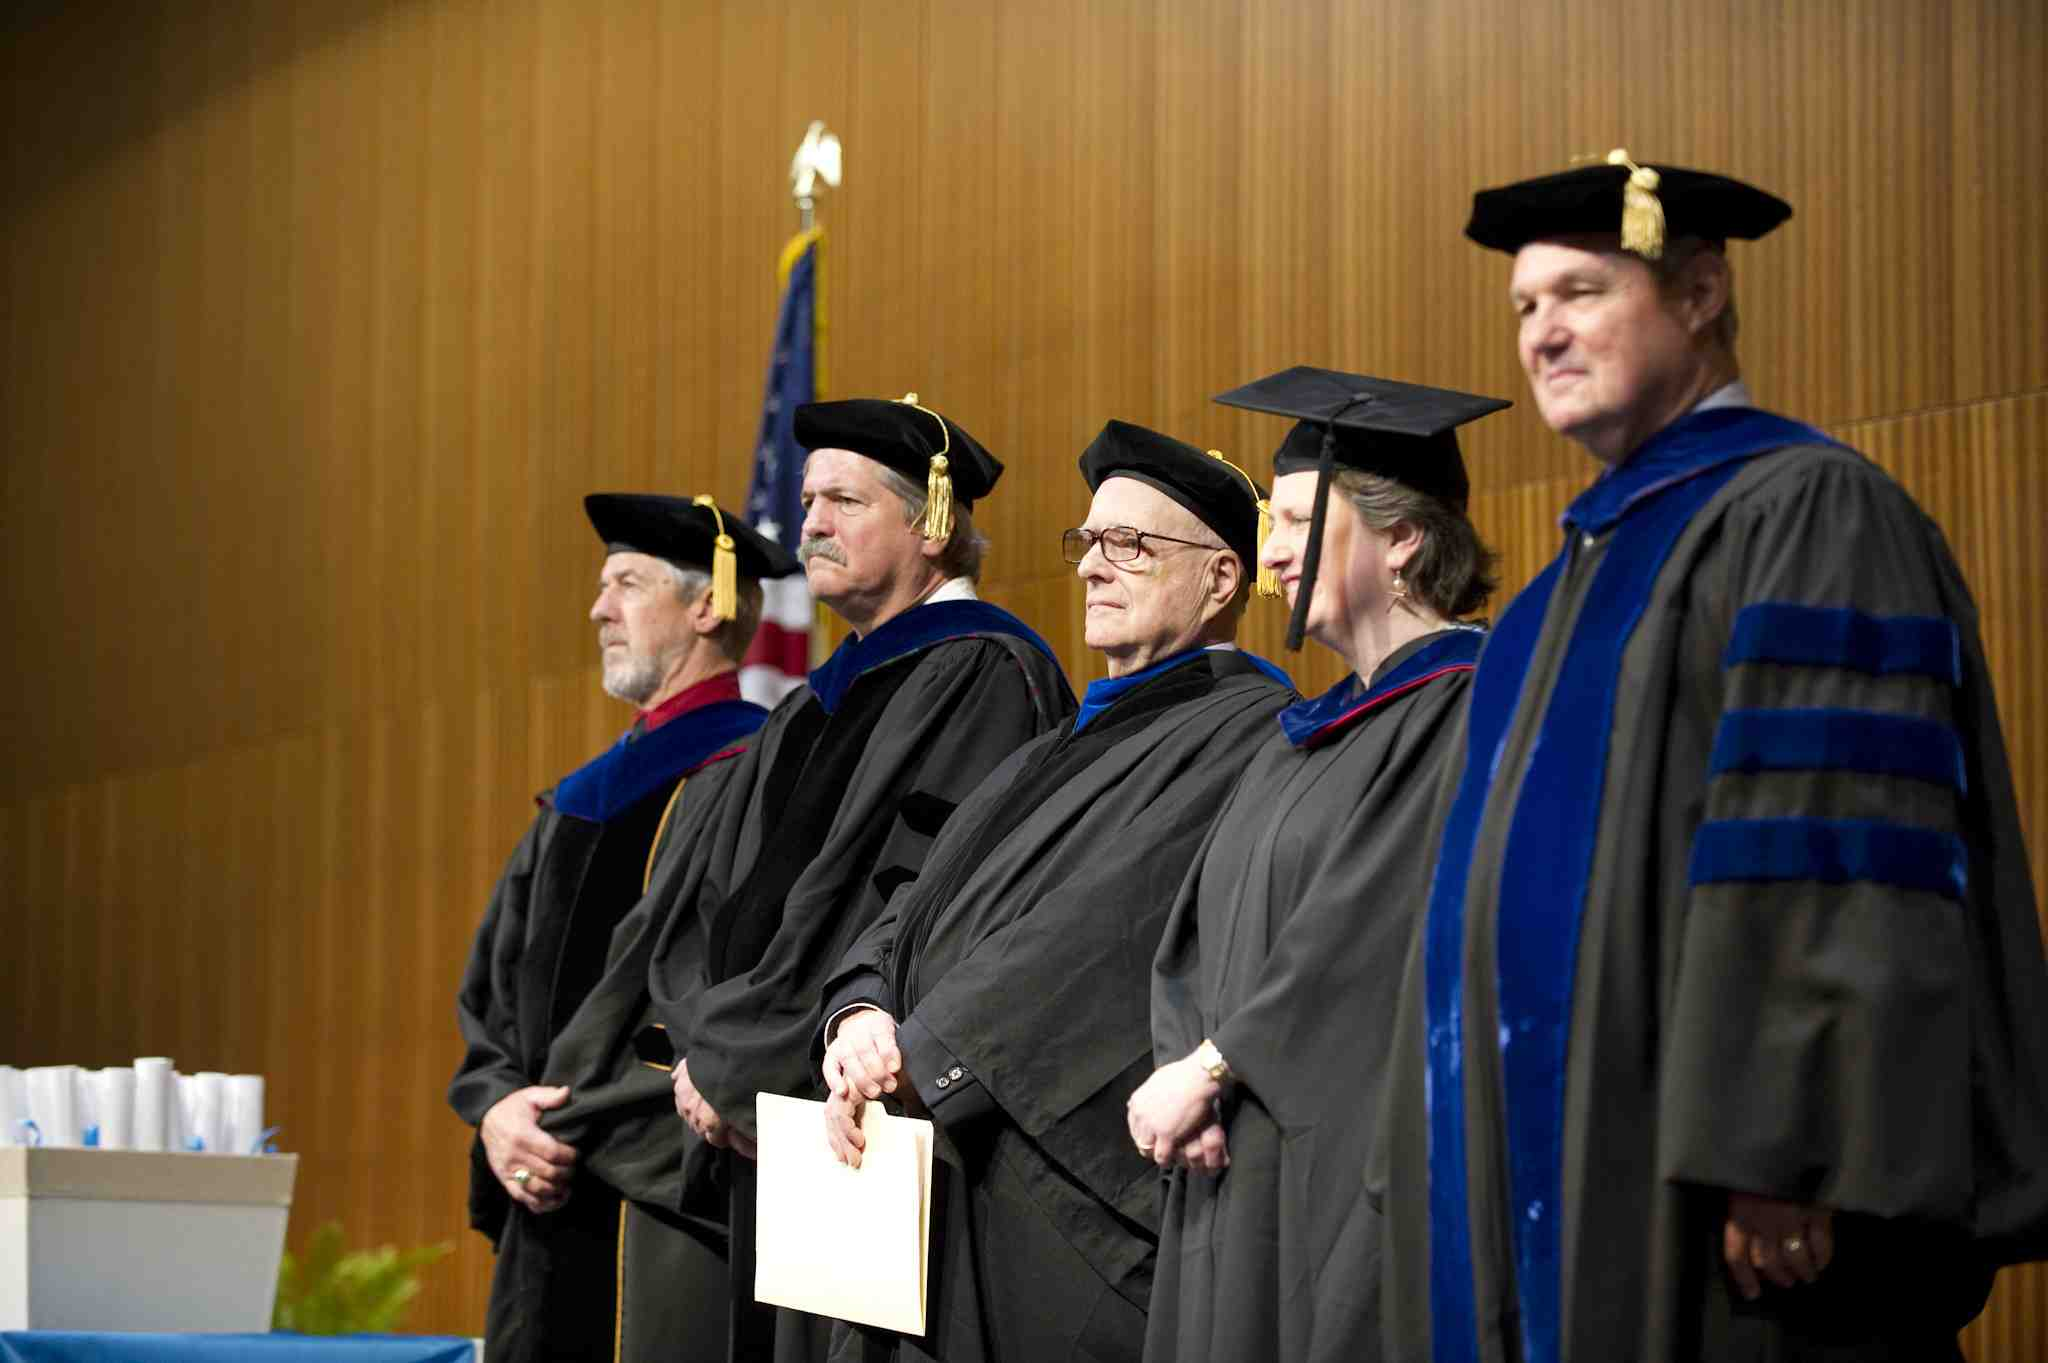 (L to R) Senior Lecturer Kenneth Matwiczak, Associate Dean Chandler Stolp, Professor Robert Auerbach, Deputy Secretary Kathleen Merrigan, and Dean Robert Hutchings